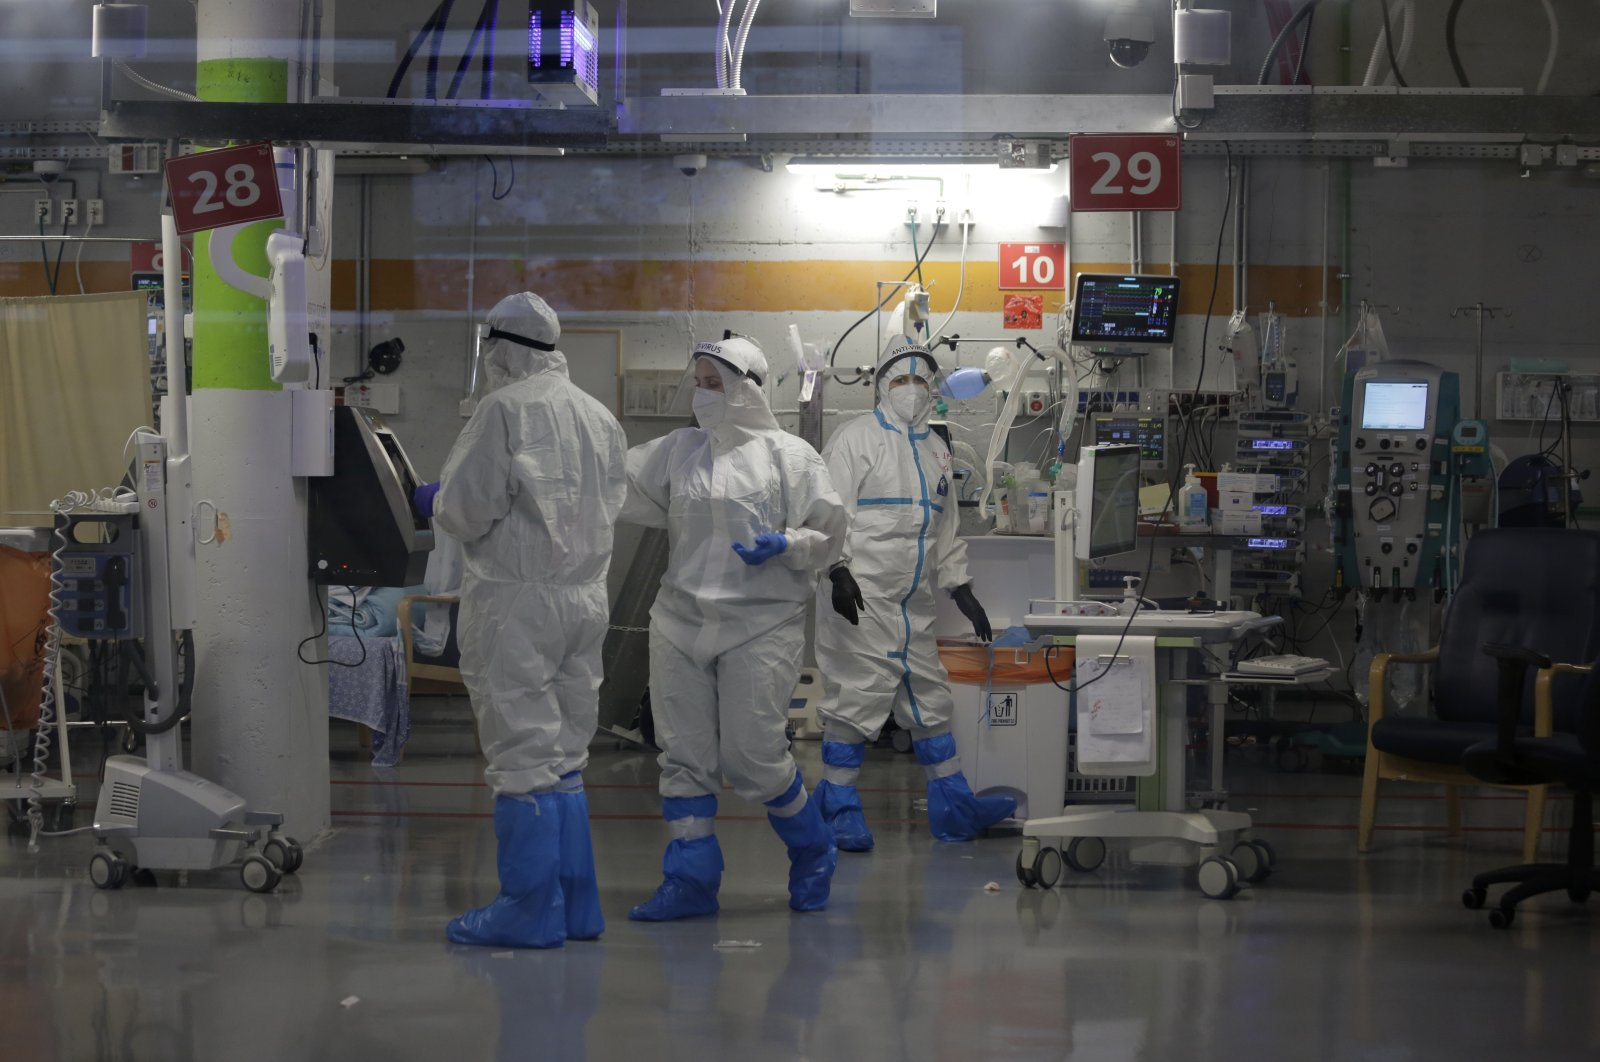 Amid a spike in COVID-19 cases, medical professionals in full protective equipment work in the critical care coronavirus unit that was built in an underground parking garage at Sheba Medical center in Rahmat Gan, Israel, Sept. 30, 2020. (AP Photo)